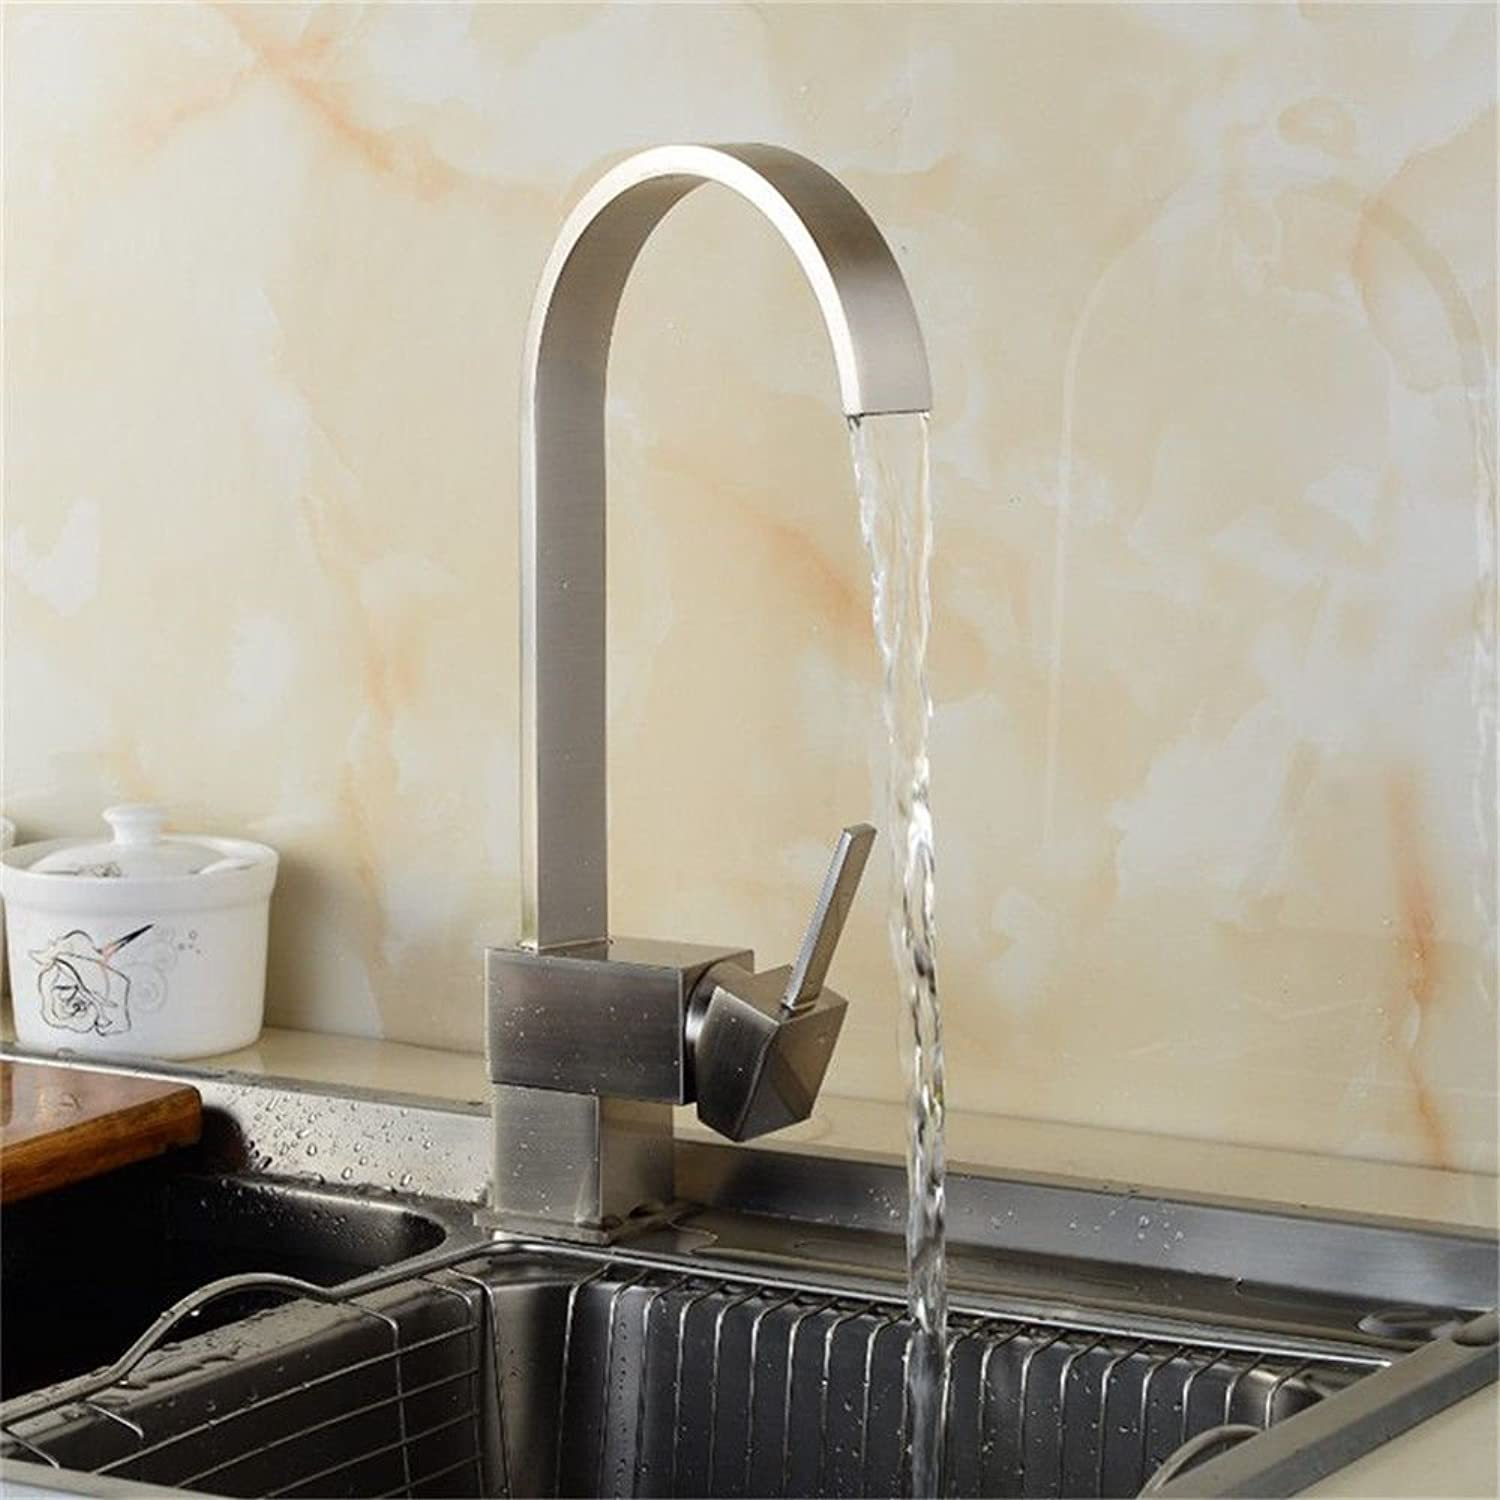 AQMMi Basin Sink Mixer Tap for Lavatory Brass Brushed Single Hole Hot and Cold Water Valve Bathroom Vanity Sink Faucet